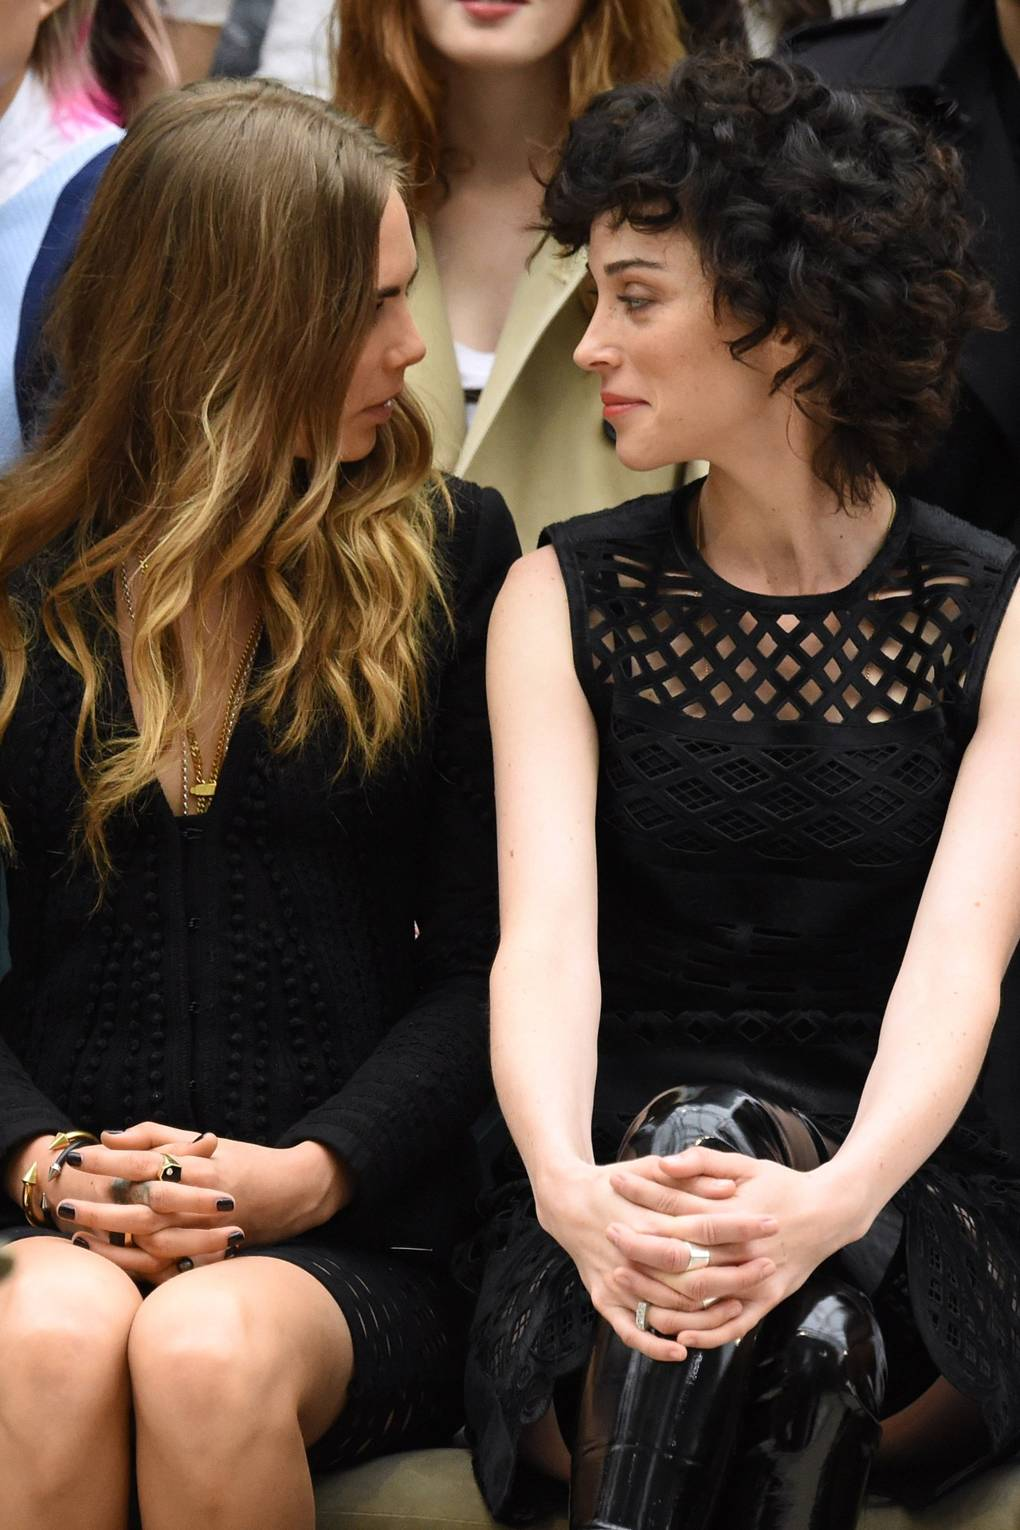 St vincent and cara delevingne dating history